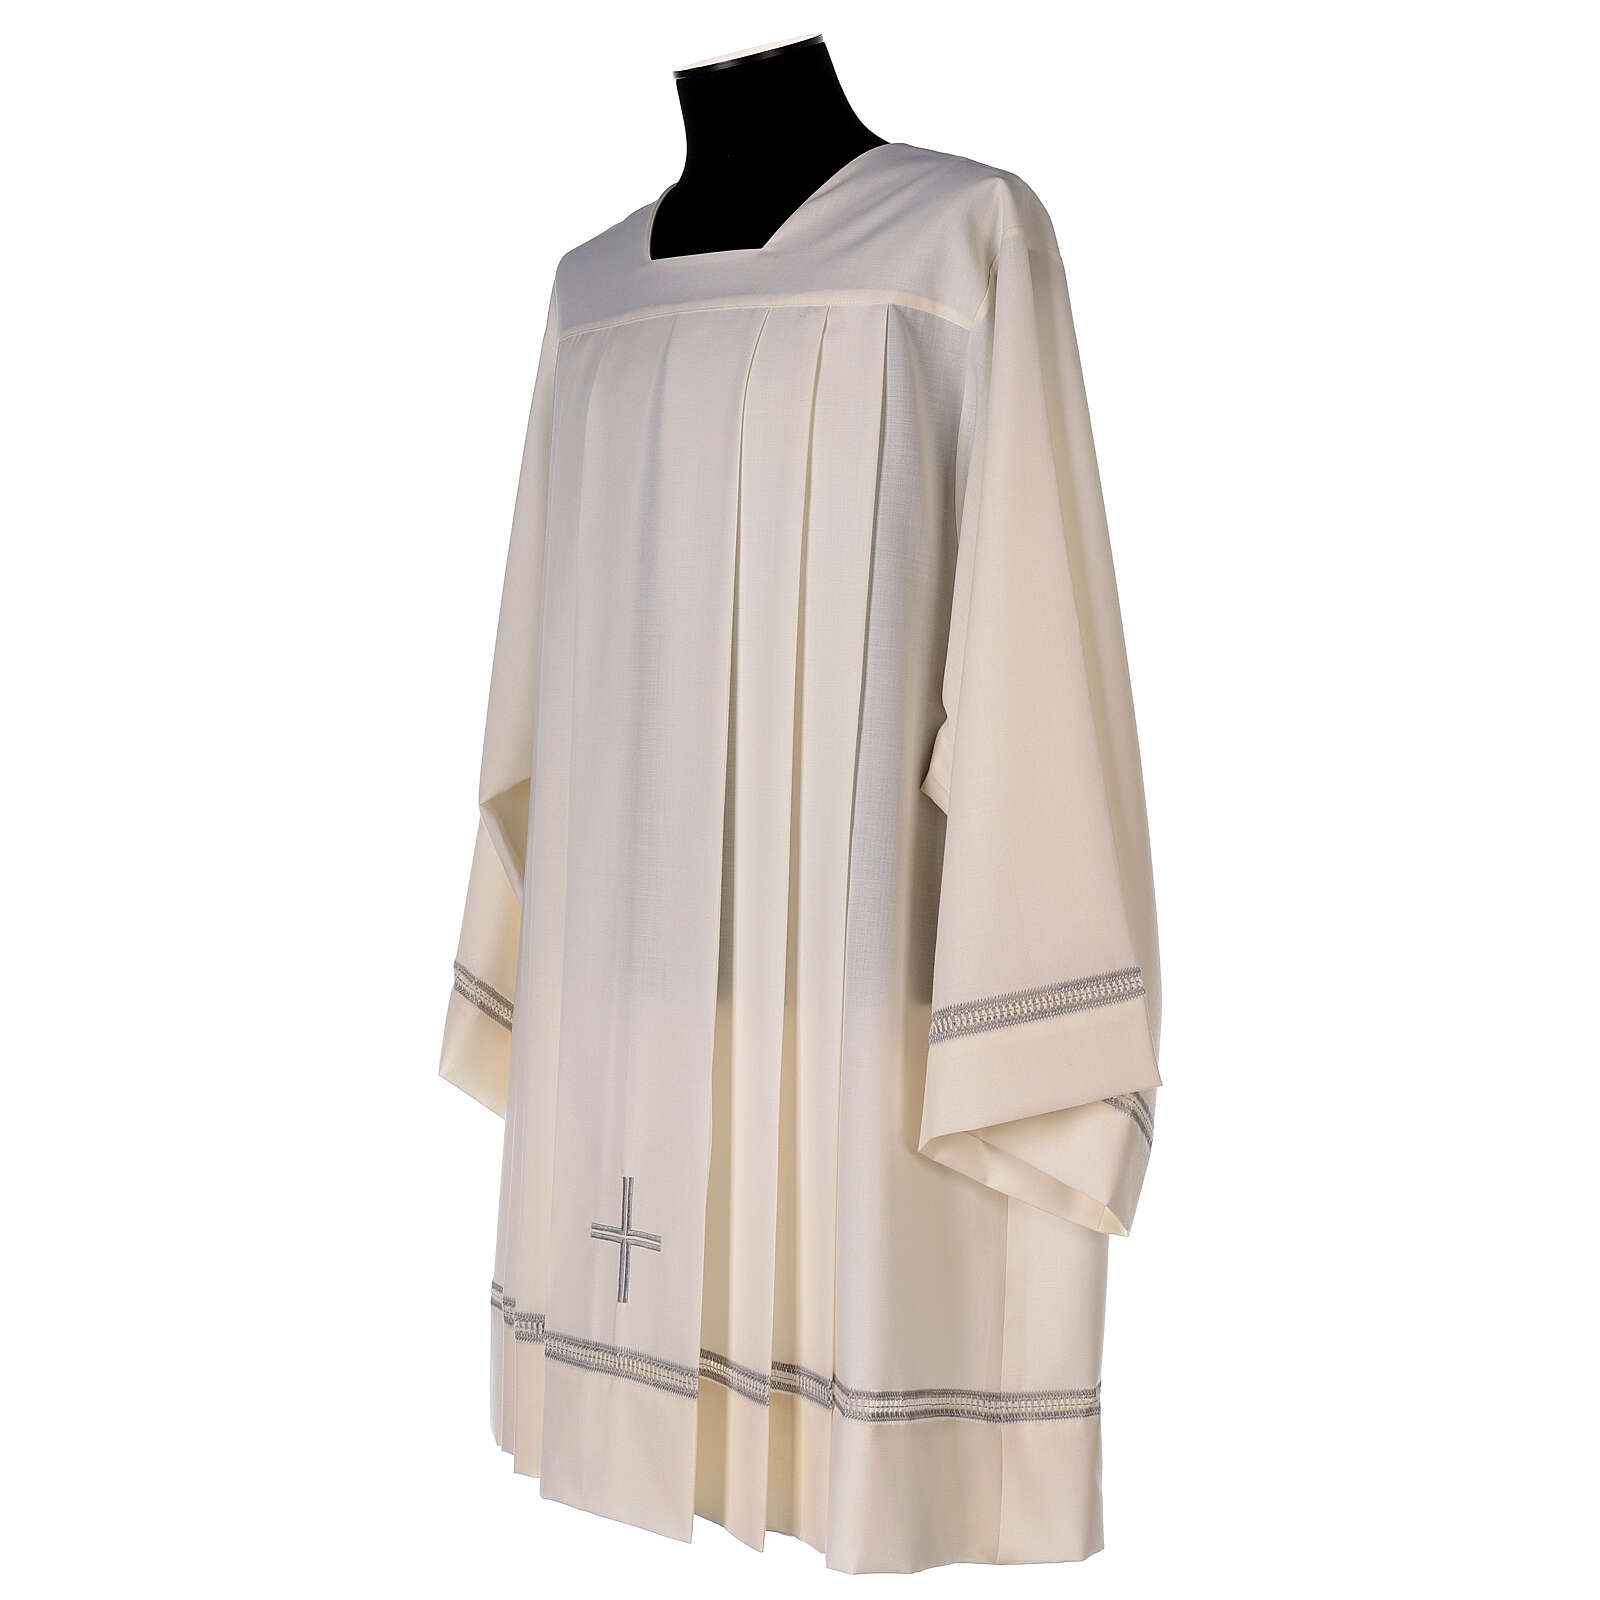 Ivory surplice, 55% polyester 45% wool with cross and gigliuccio hemstitch 4